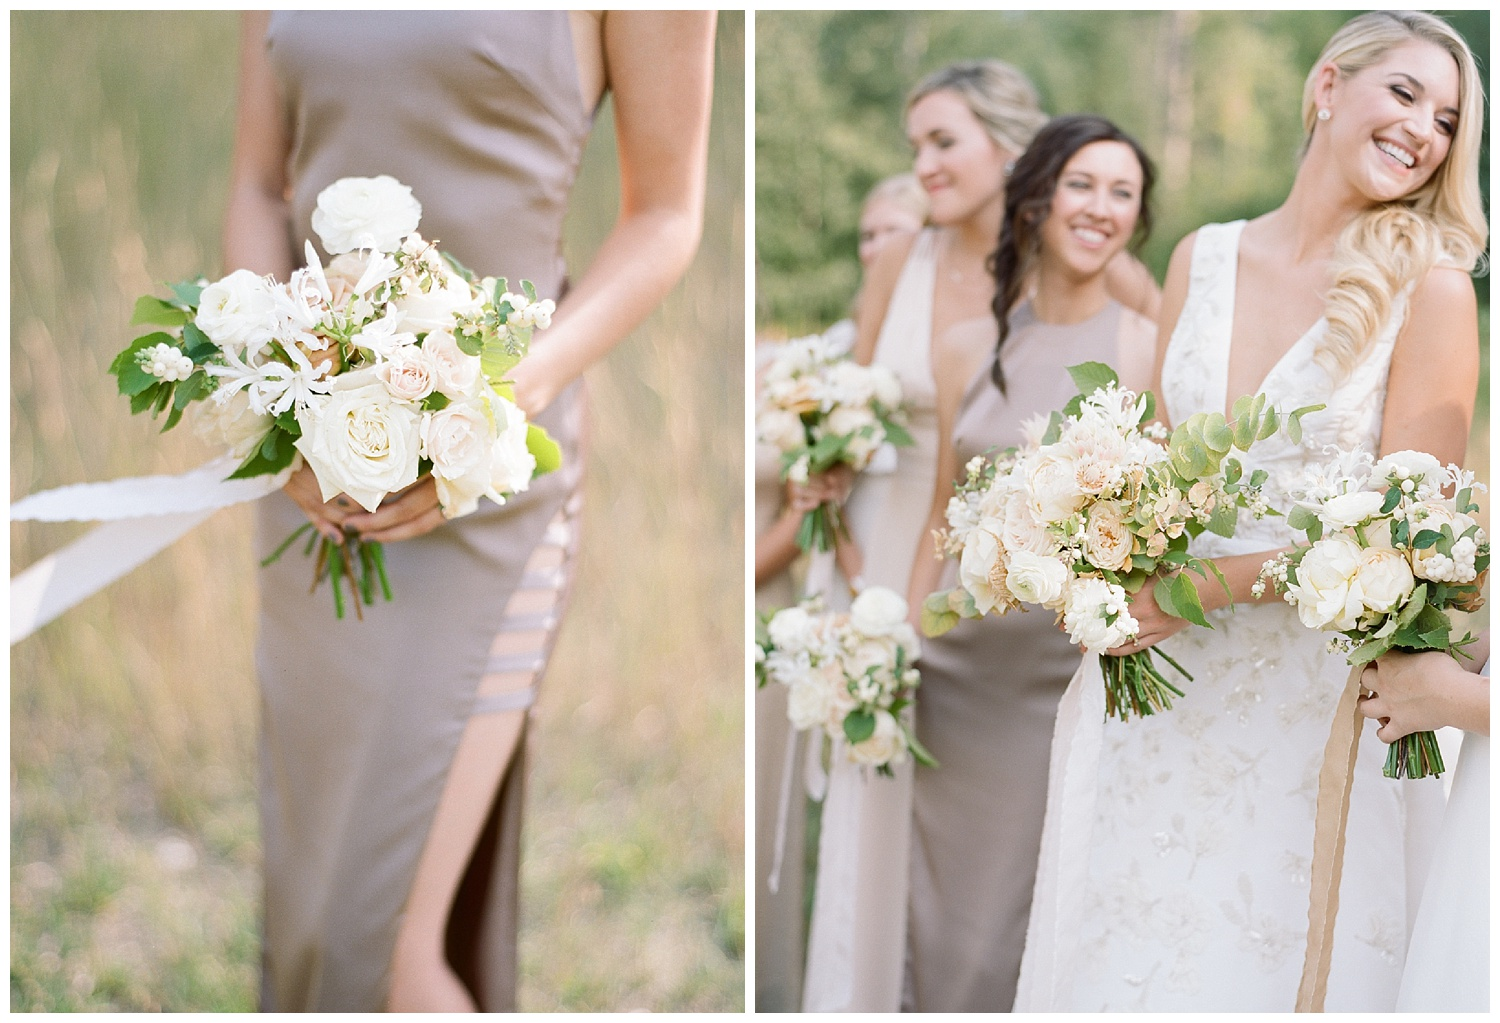 Tan and beige bridesmaids' gowns; Sylvie Gil Photography